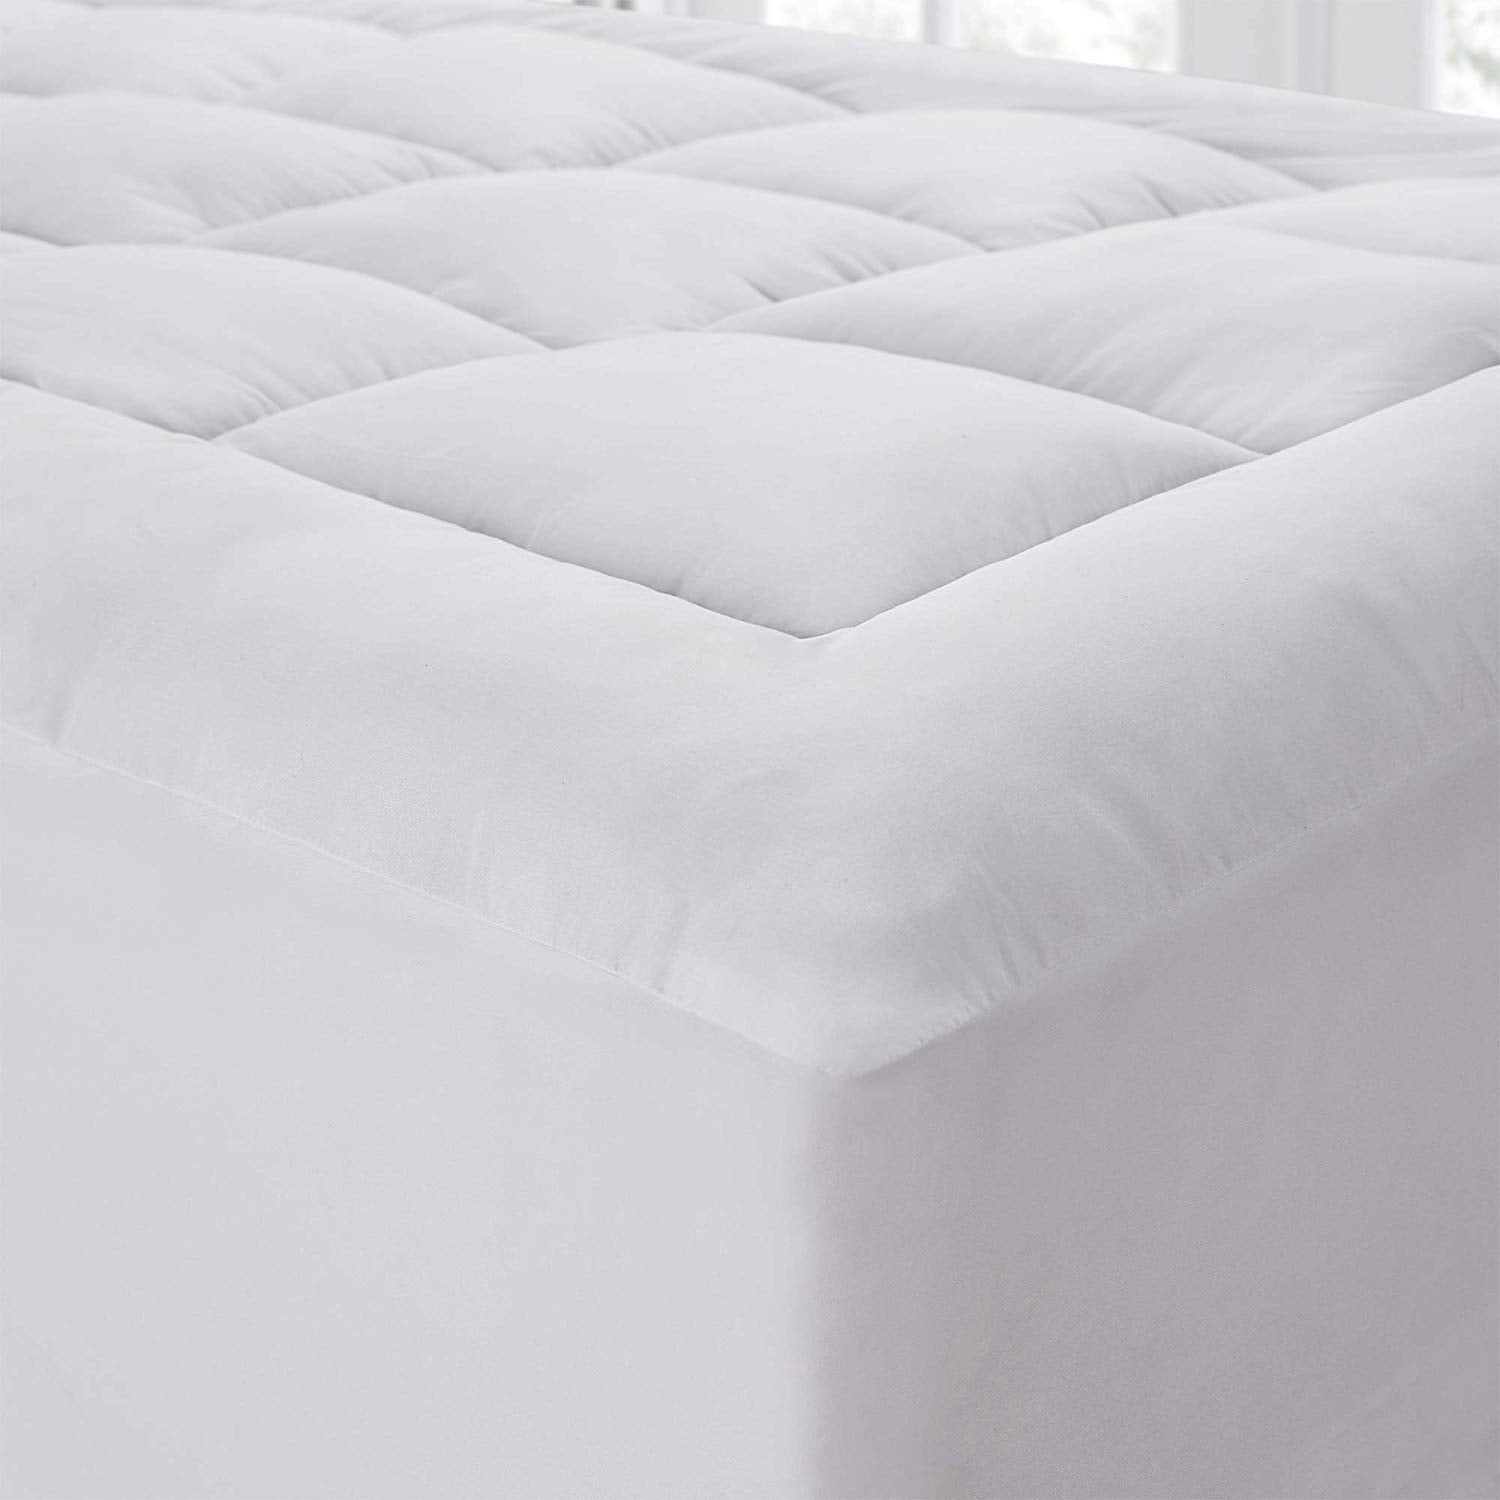 The Mega Thick Mattress Pad Topper Pillow Top On Sale Overstock 28435554